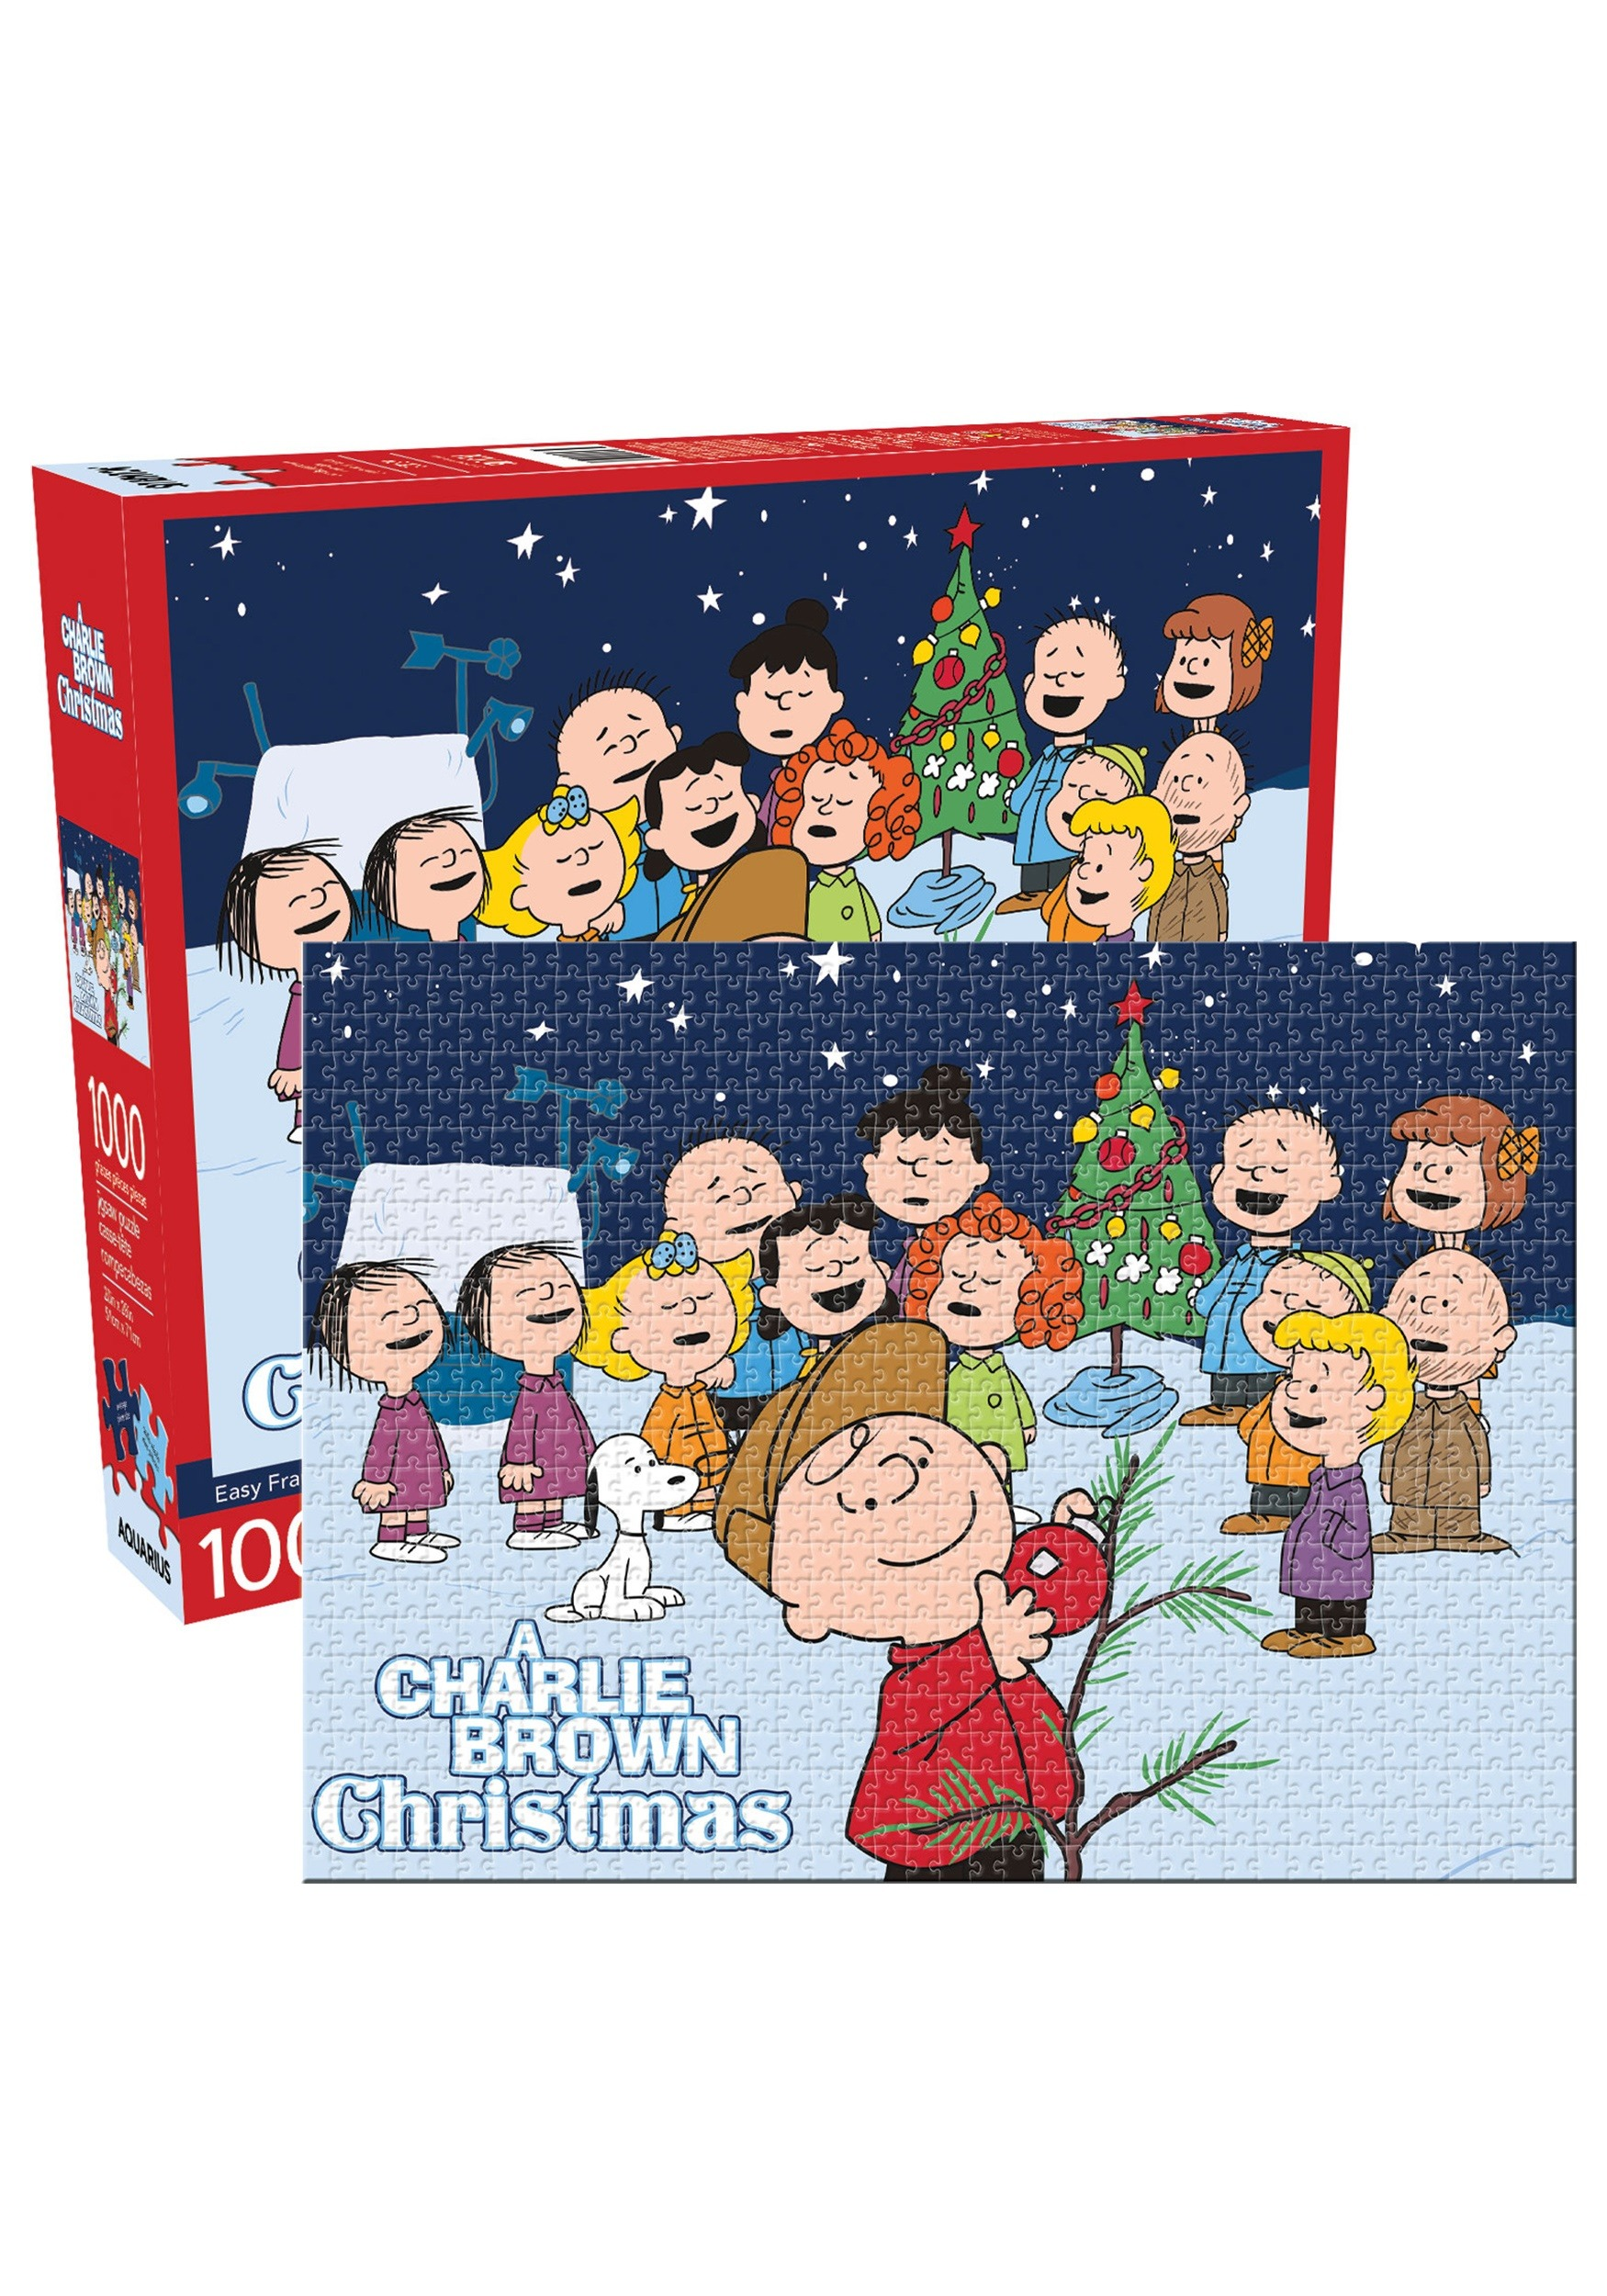 Charlie Brown Christmas Images.Peanuts A Charlie Brown Christmas 1000 Piece Puzzle